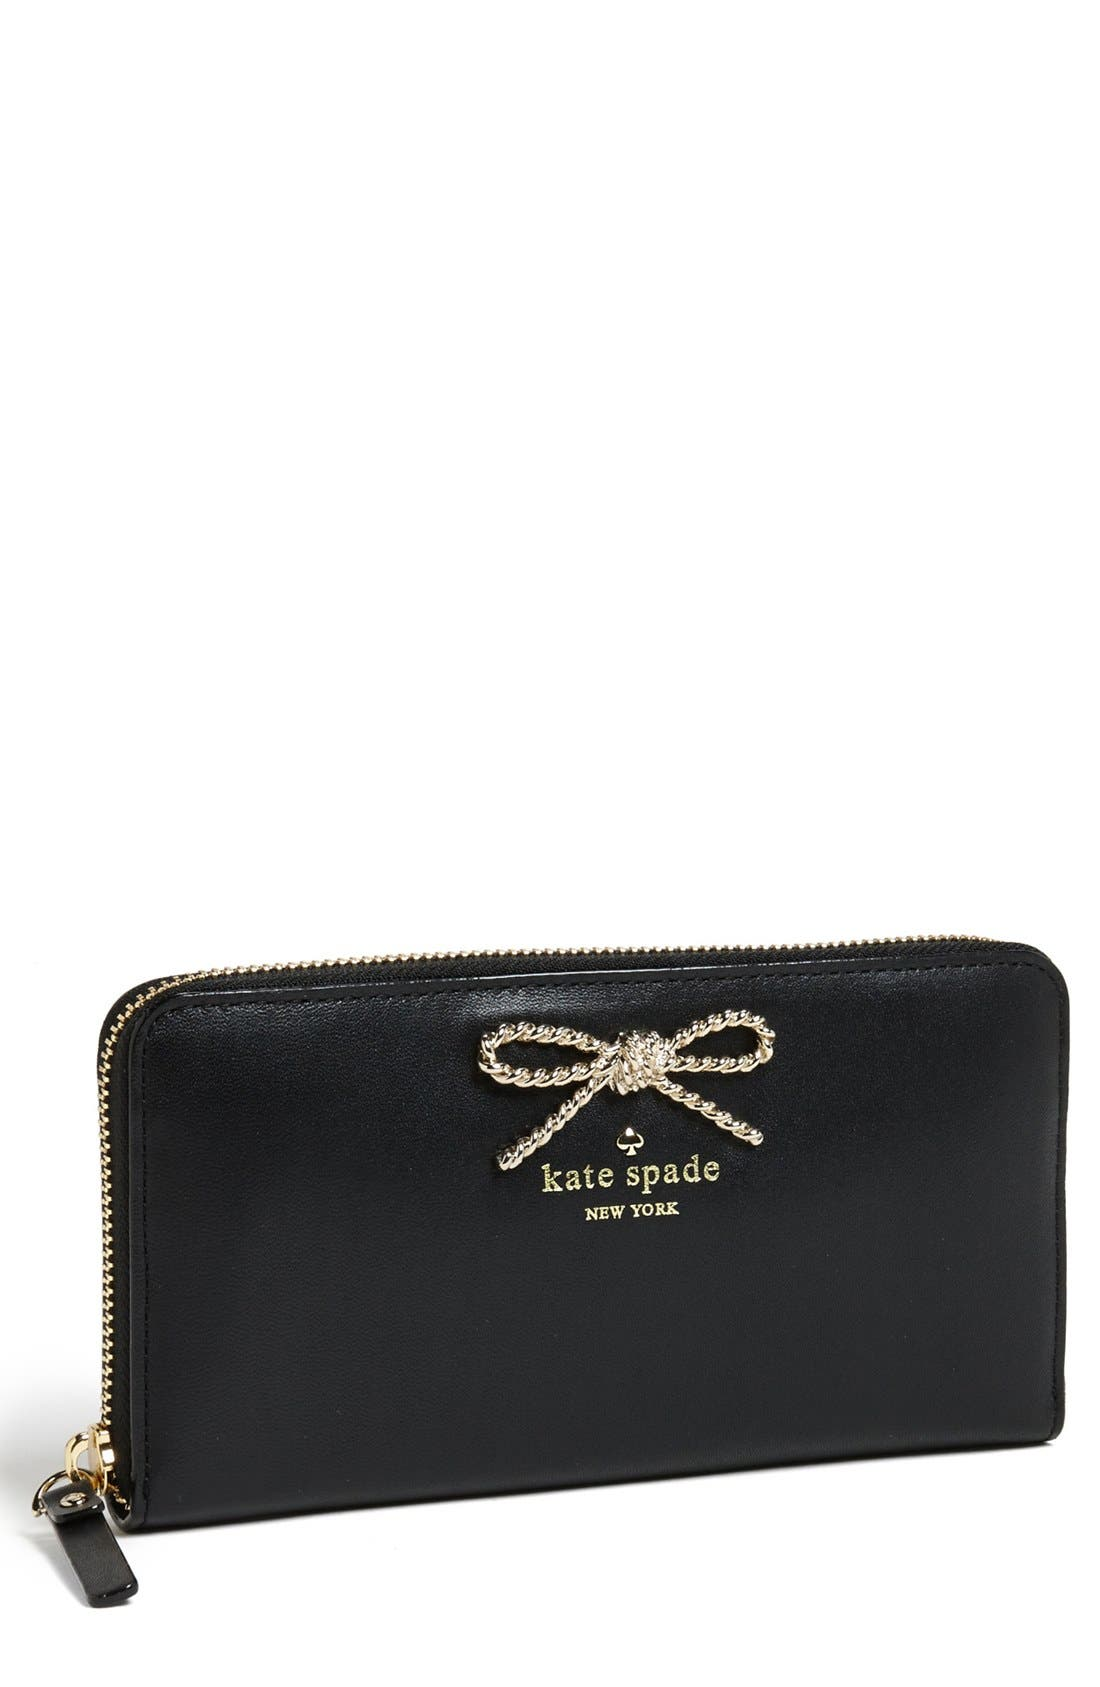 Main Image - kate spade new york 'fair maiden - lacey' leather wallet